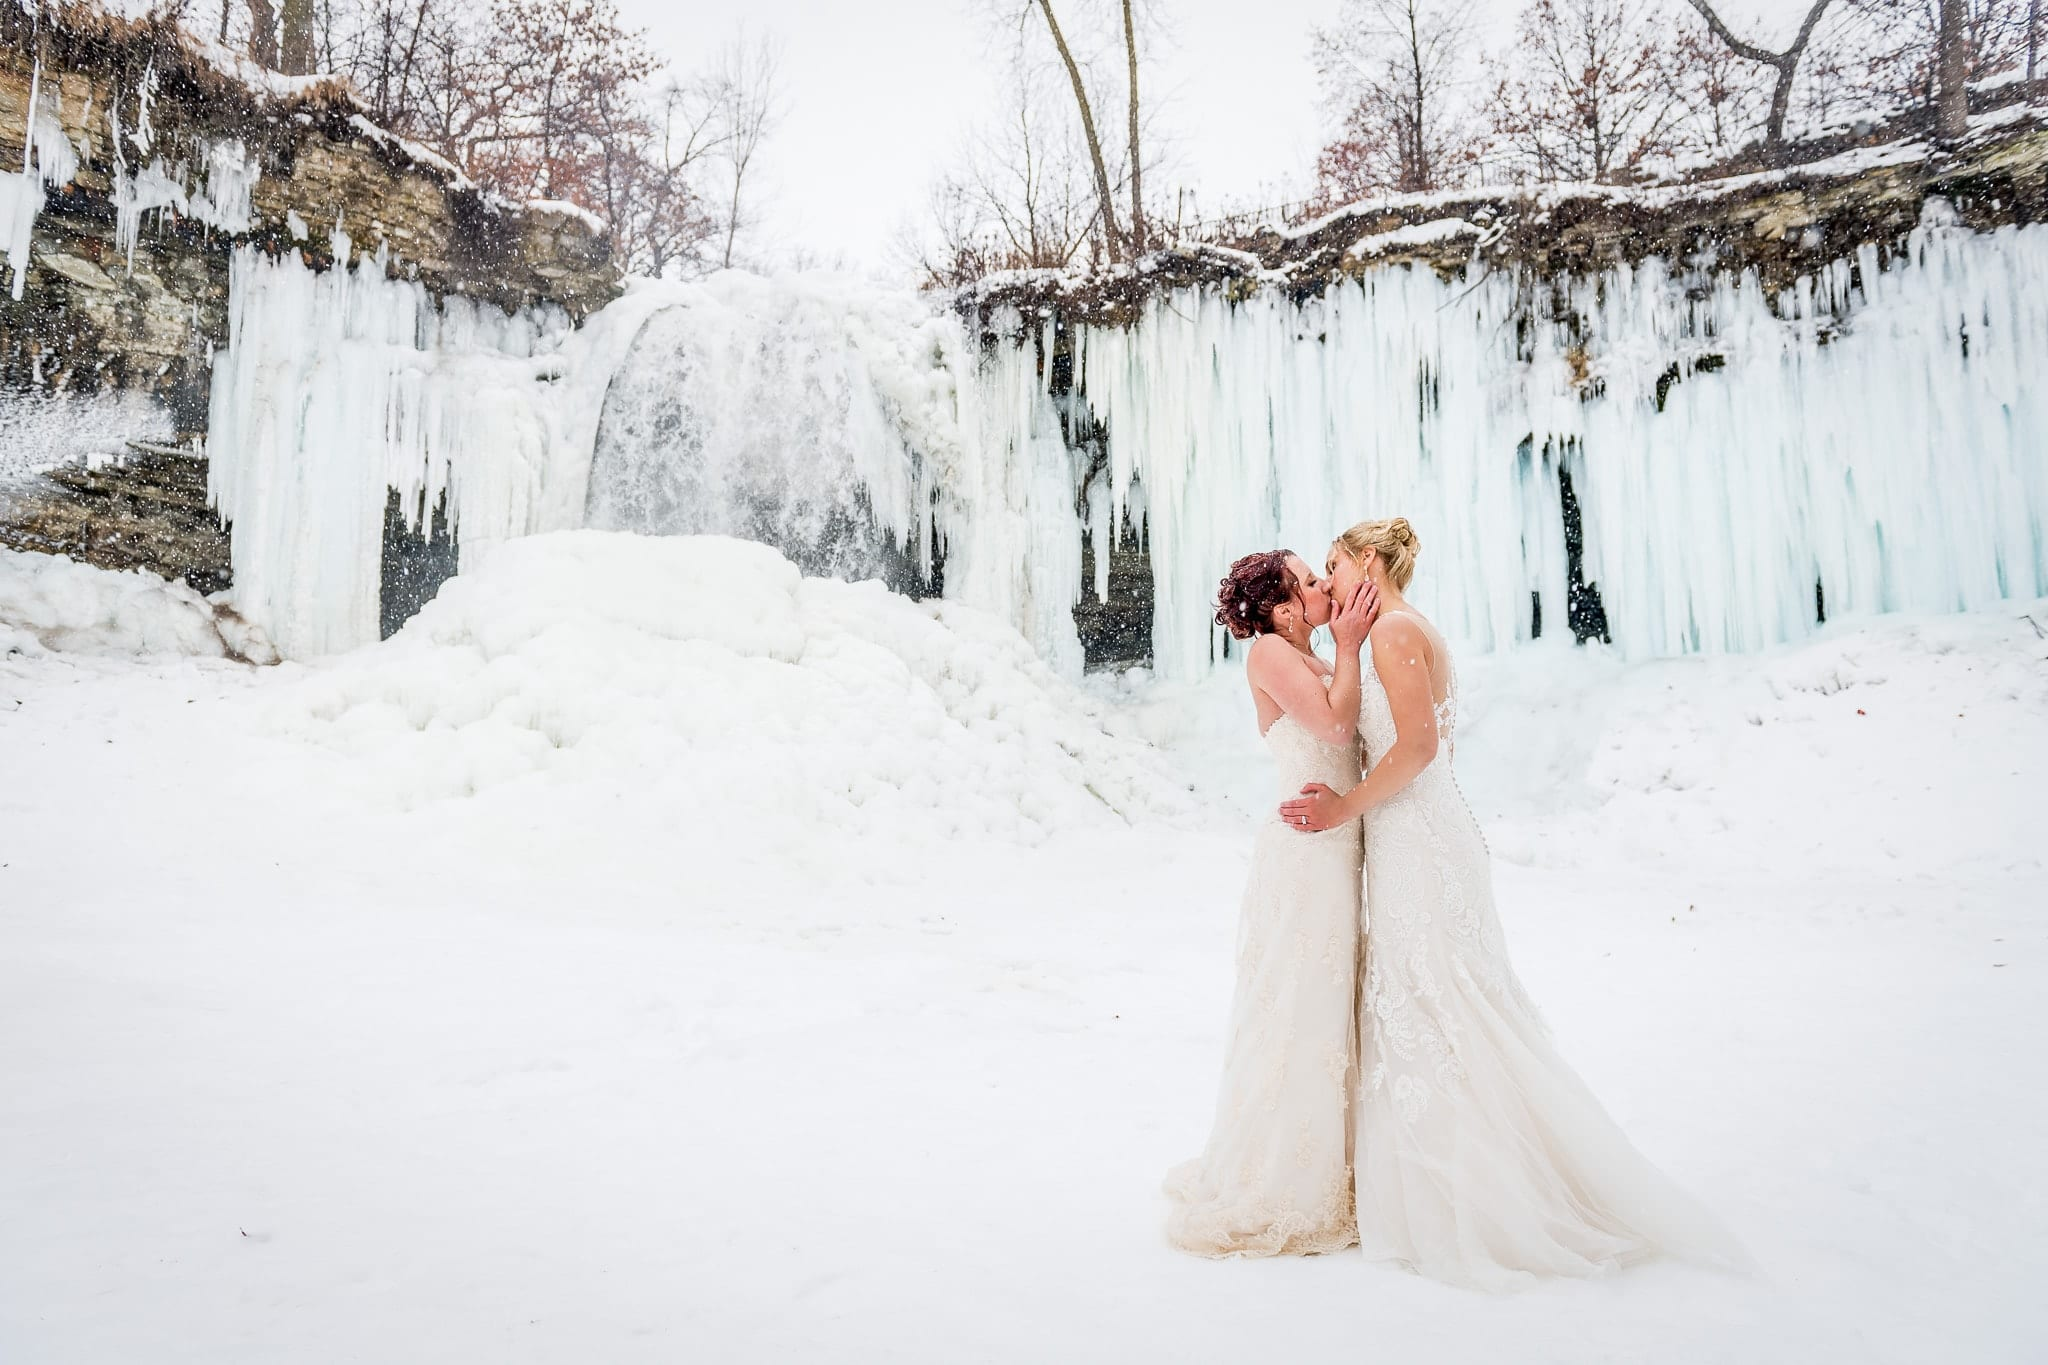 Two brides sharing a sweet kiss at Minnehaha Falls in Minneapolis on their wedding day